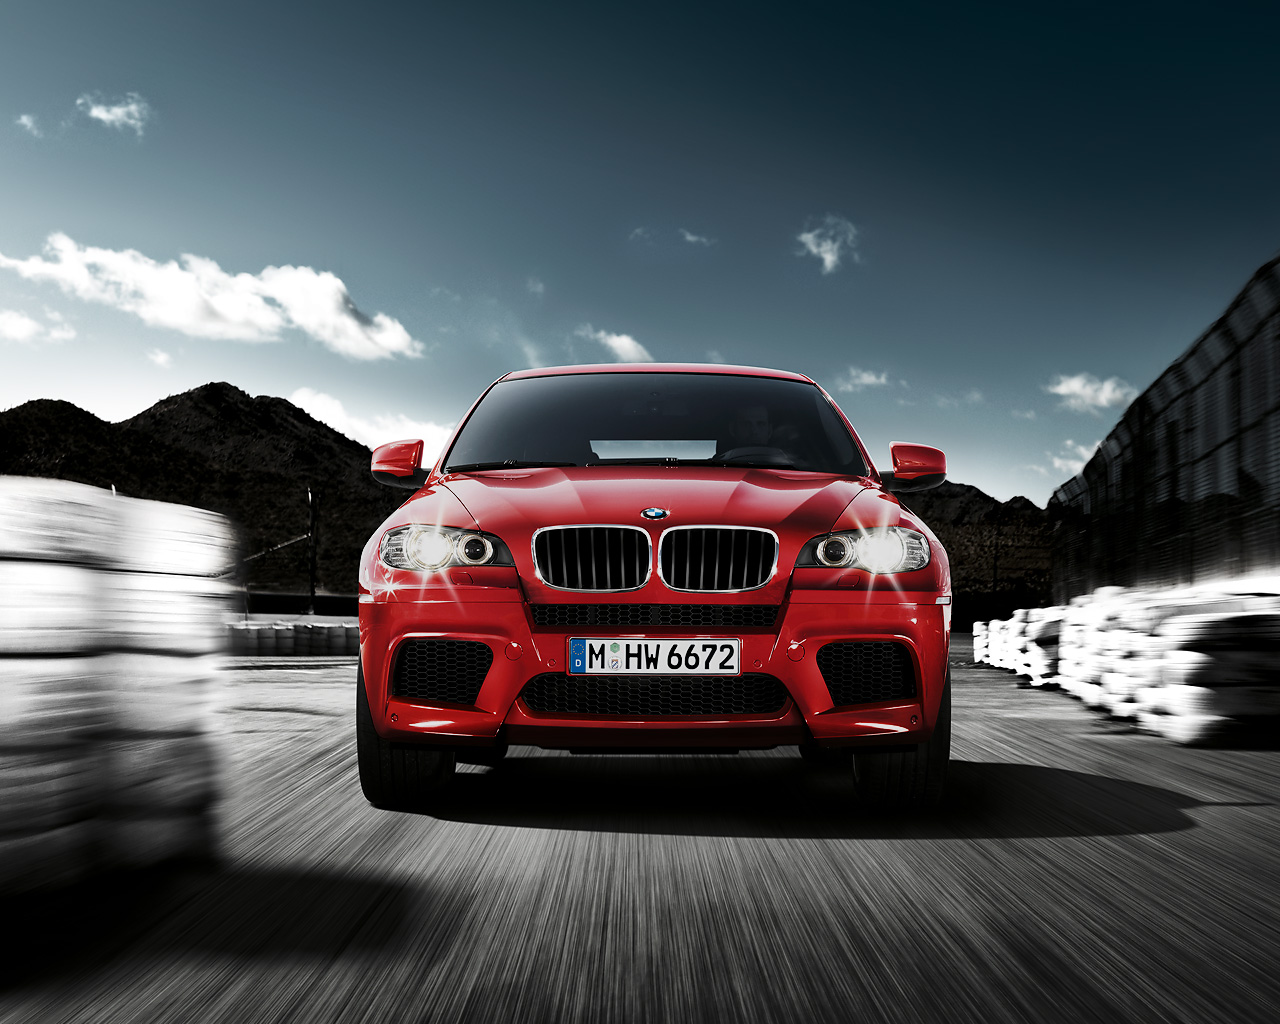 Car Model 2012 Cool Bmw Cars Wallpapers